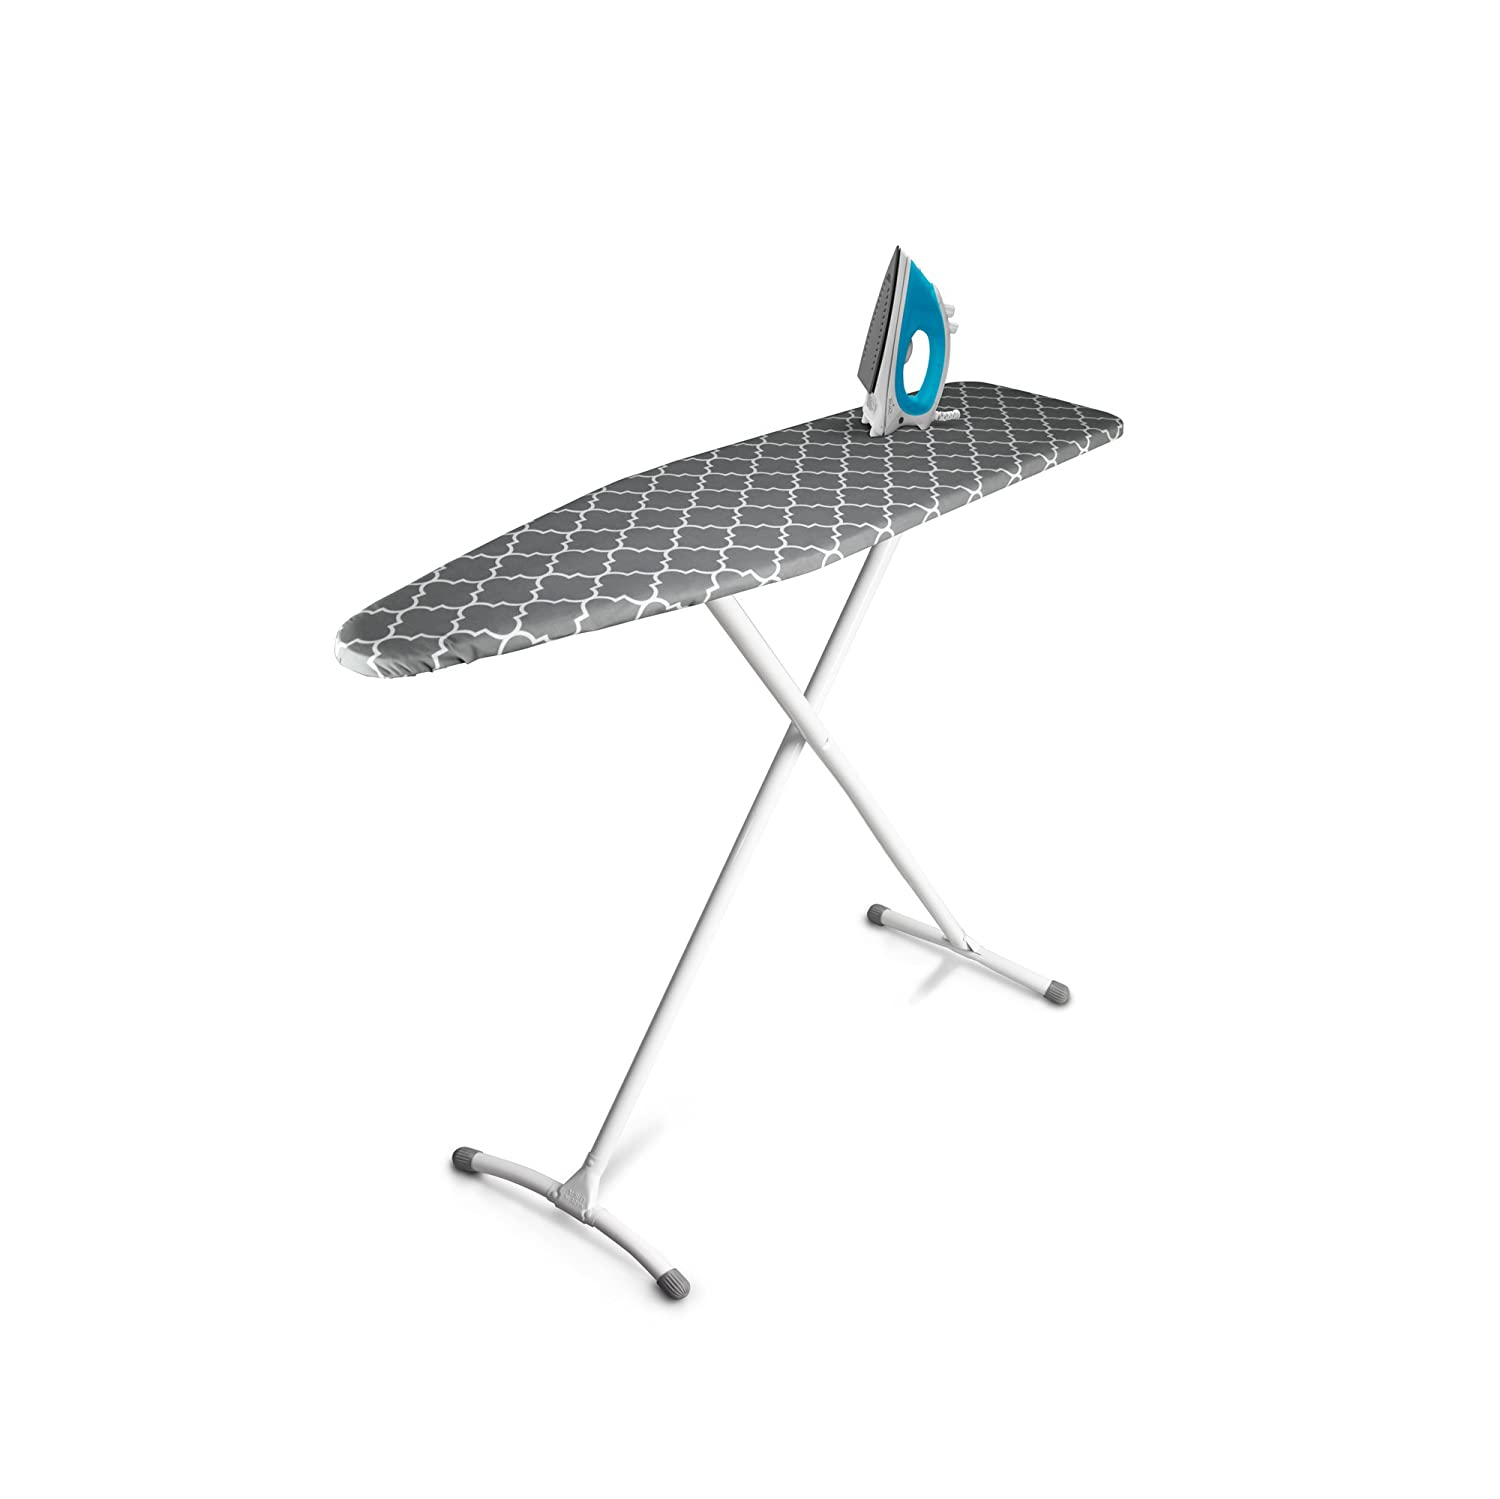 "Homz Contour Ironing Board, Extra Stable Legs, 54"" x 14"" Adjusts to 35"" Tall, Gray Lattice"